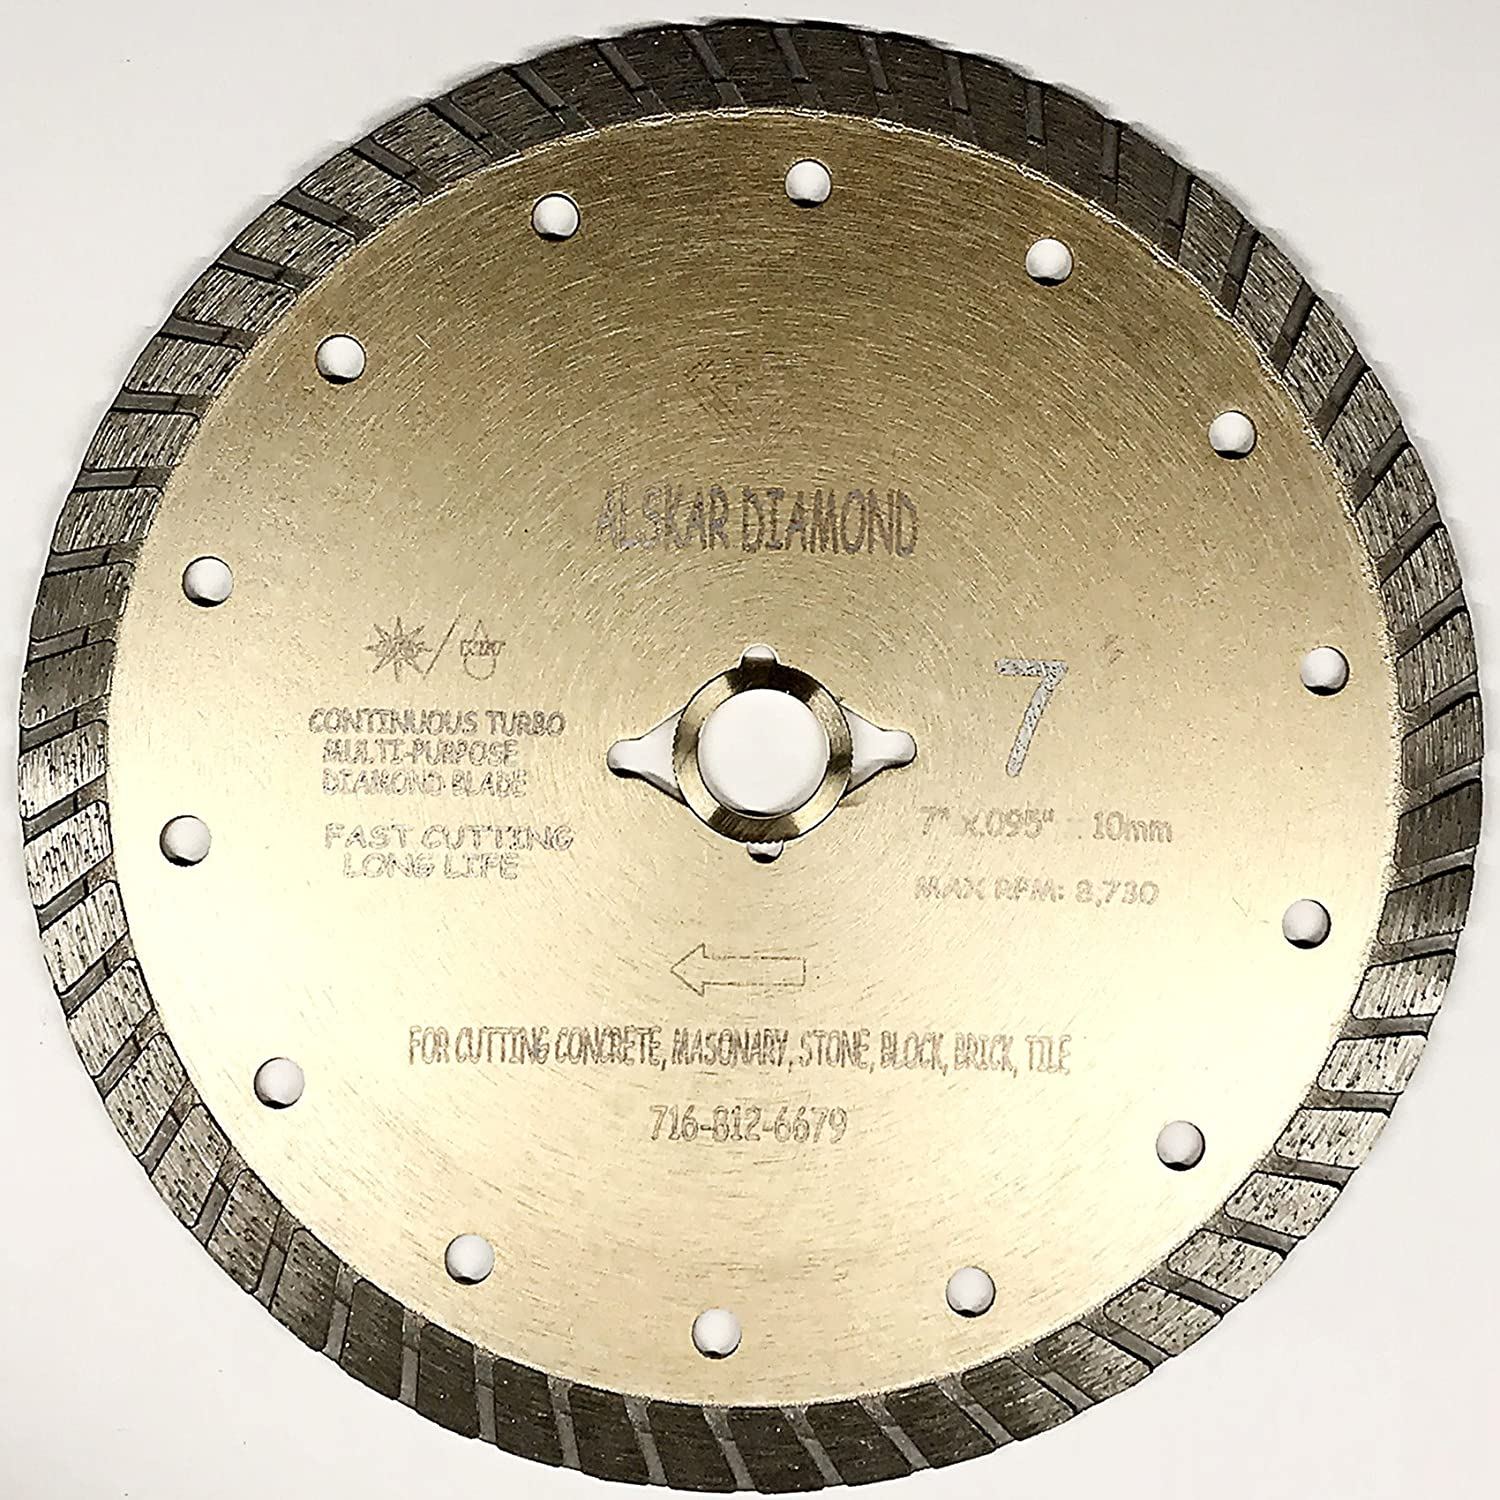 "ALSKAR DIAMOND ADLSC 7 inch Dry or Wet Cutting General Purpose Continuous Turbo Power Saw Diamond Blades for Concrete Masonry Brick Stone (7"")"